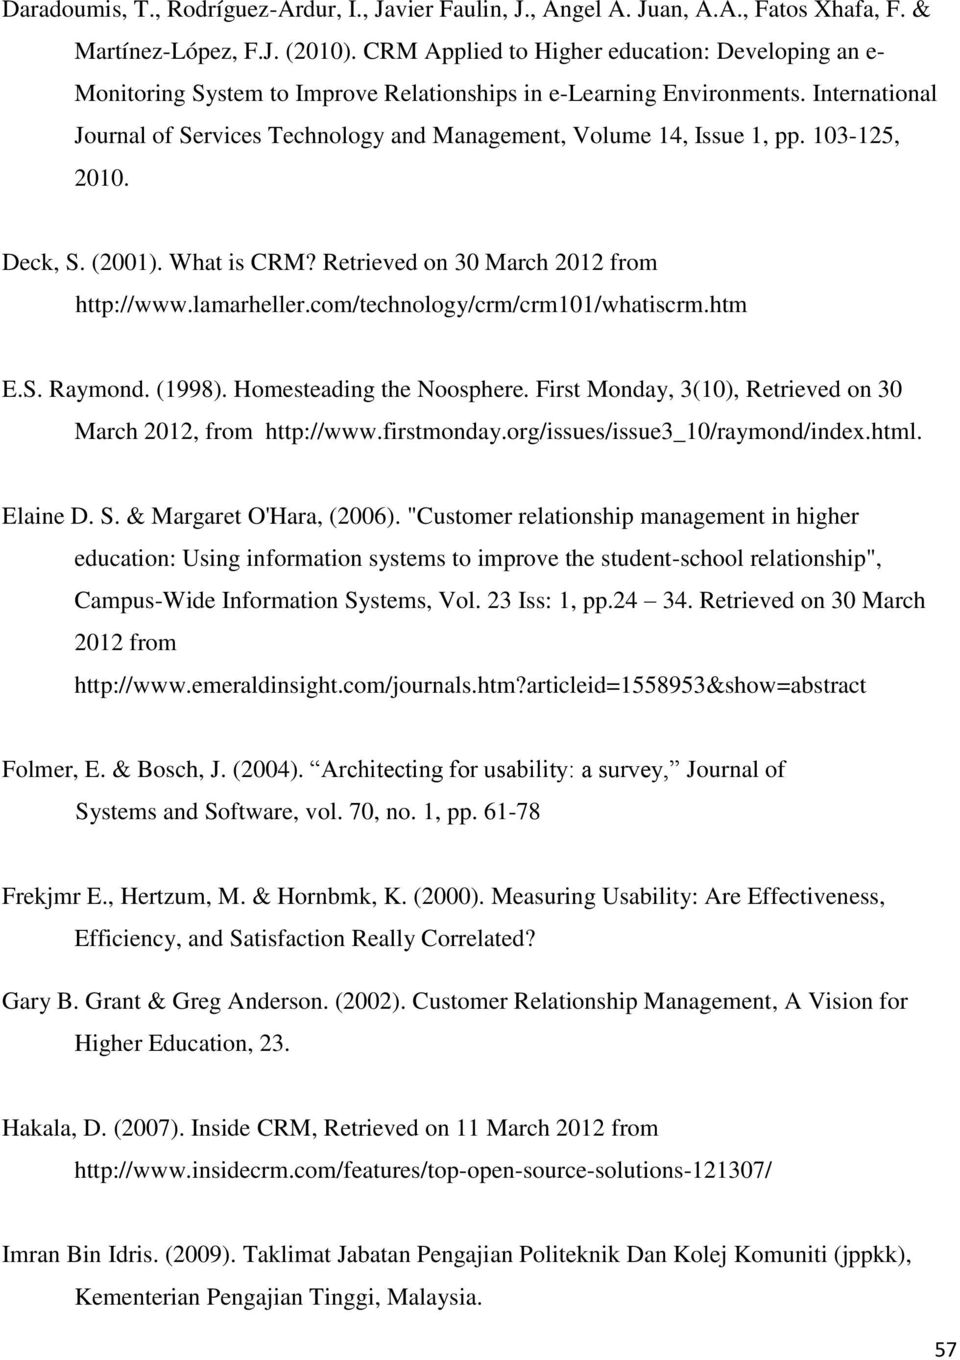 International Journal of Services Technology and Management, Volume 14, Issue 1, pp. 103-125, 2010. Deck, S. (2001). What is CRM? Retrieved on 30 March 2012 from http://www.lamarheller.